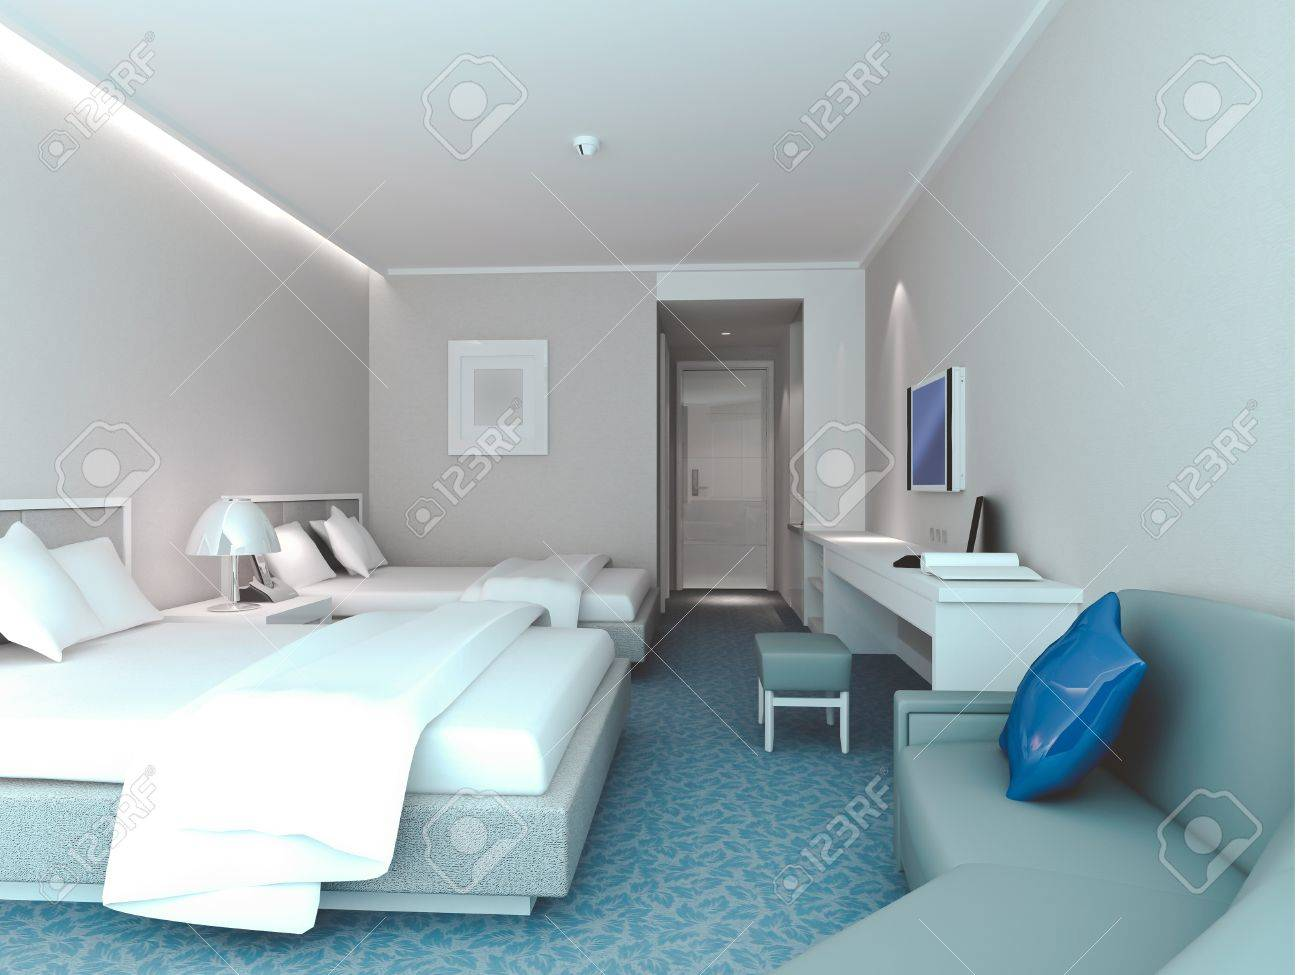 Modern Design Interior Of Bedroom Hotel Rooms 3d Render Stock Photo Picture And Royalty Free Image Image 8999821